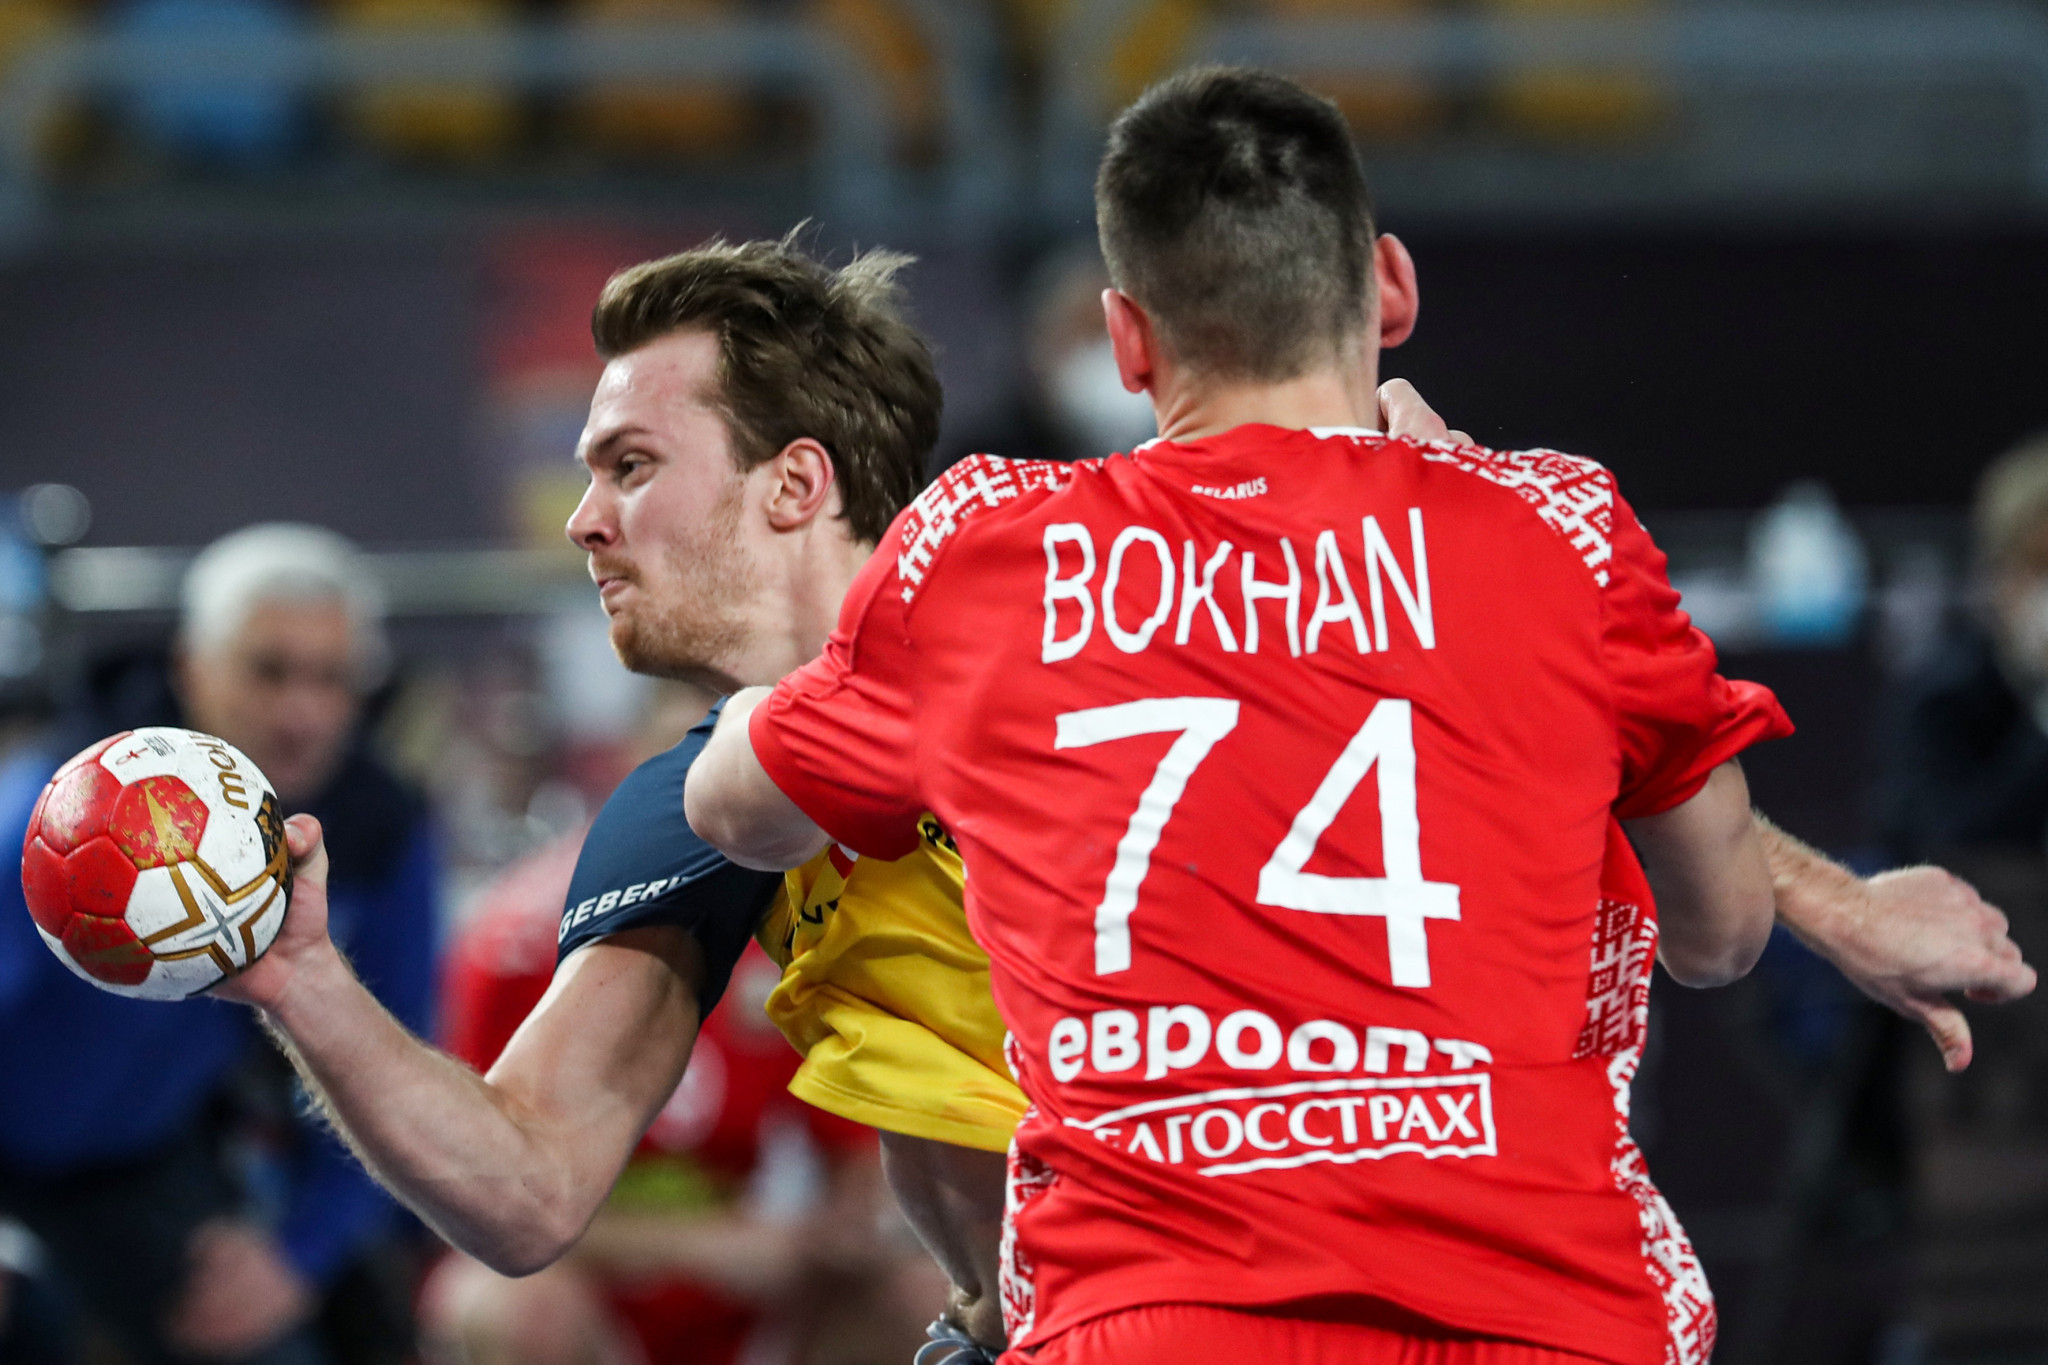 Belarus (playing in red) snatched a draw against Sweden with four seconds to go on the first day of main round action at the World Men's Handball Championship ©Getty Images